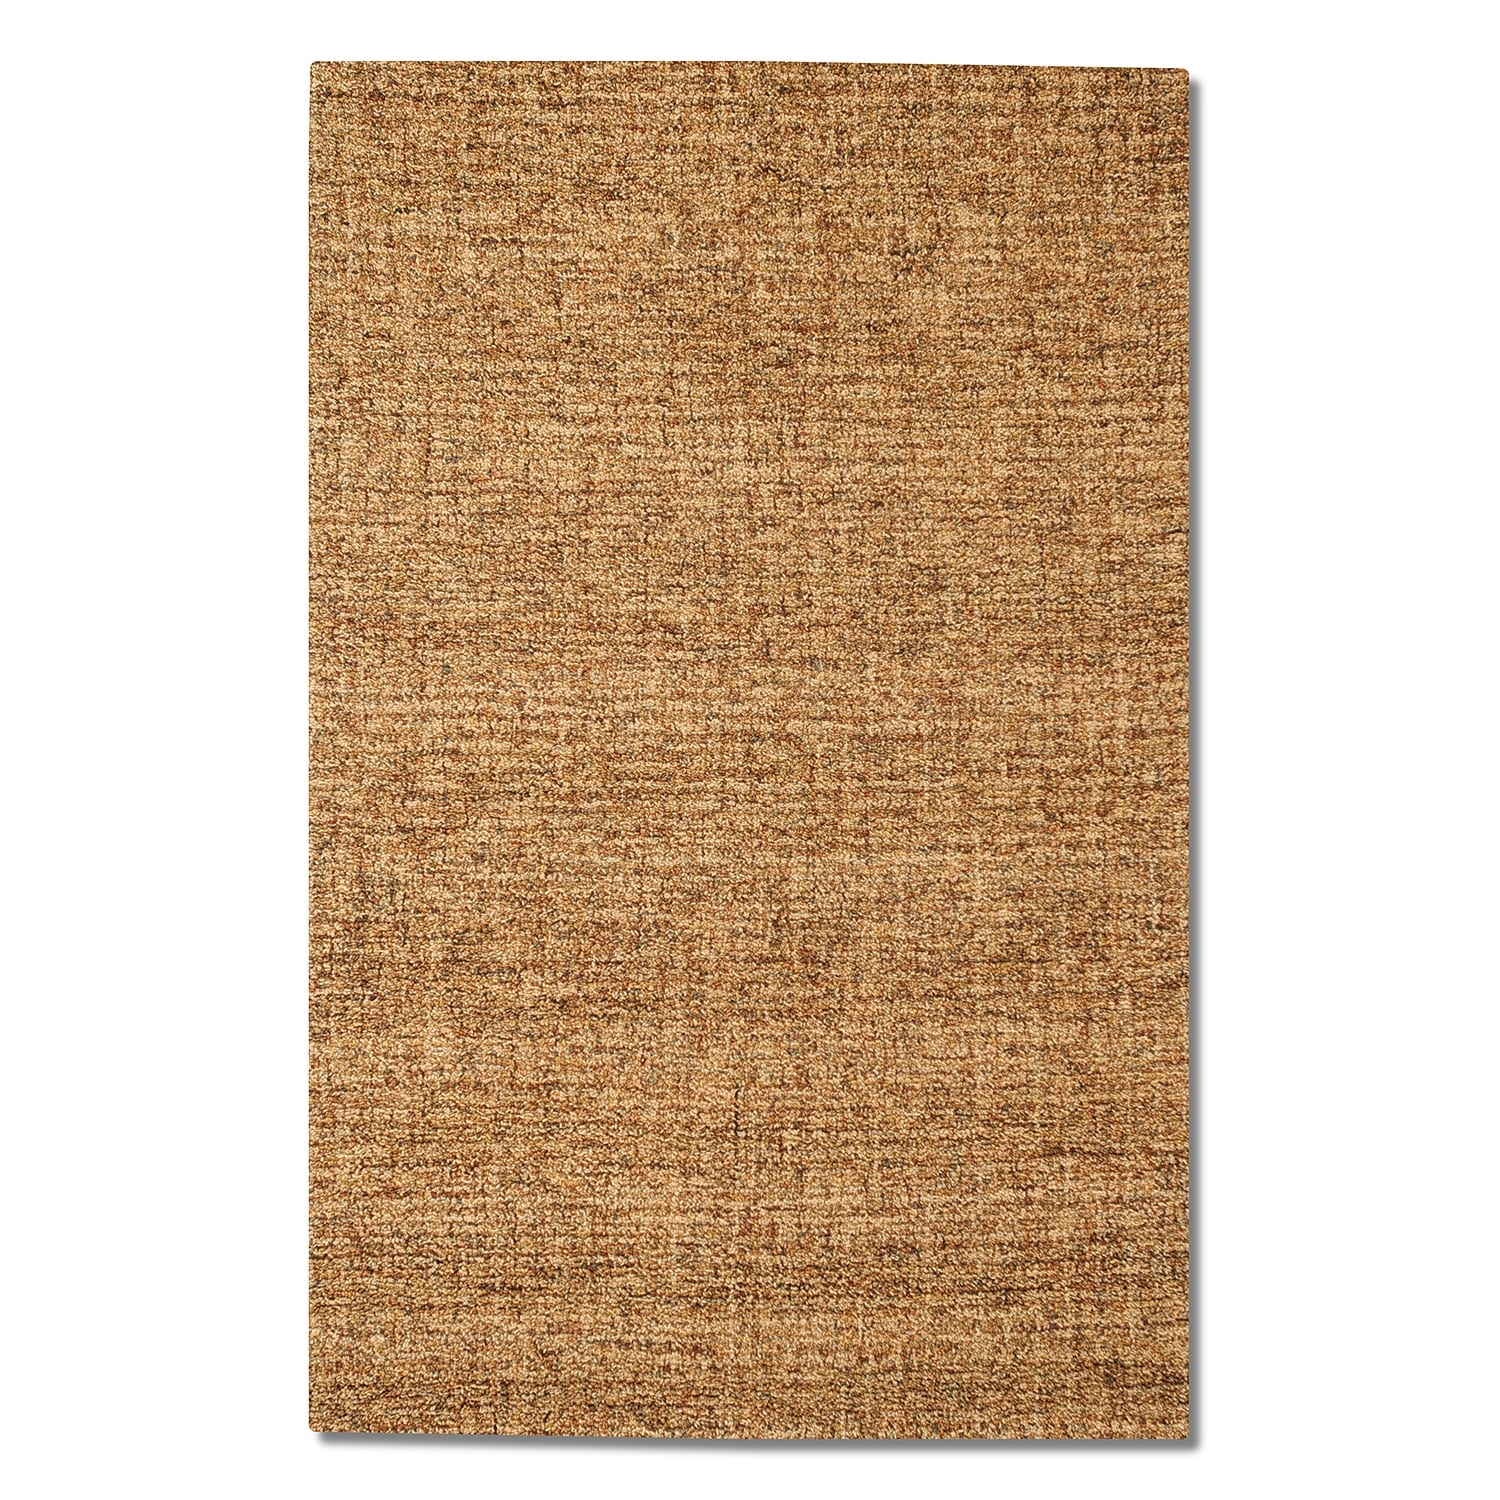 Rugs - Textures Hyde Area Rug (8' x 10')